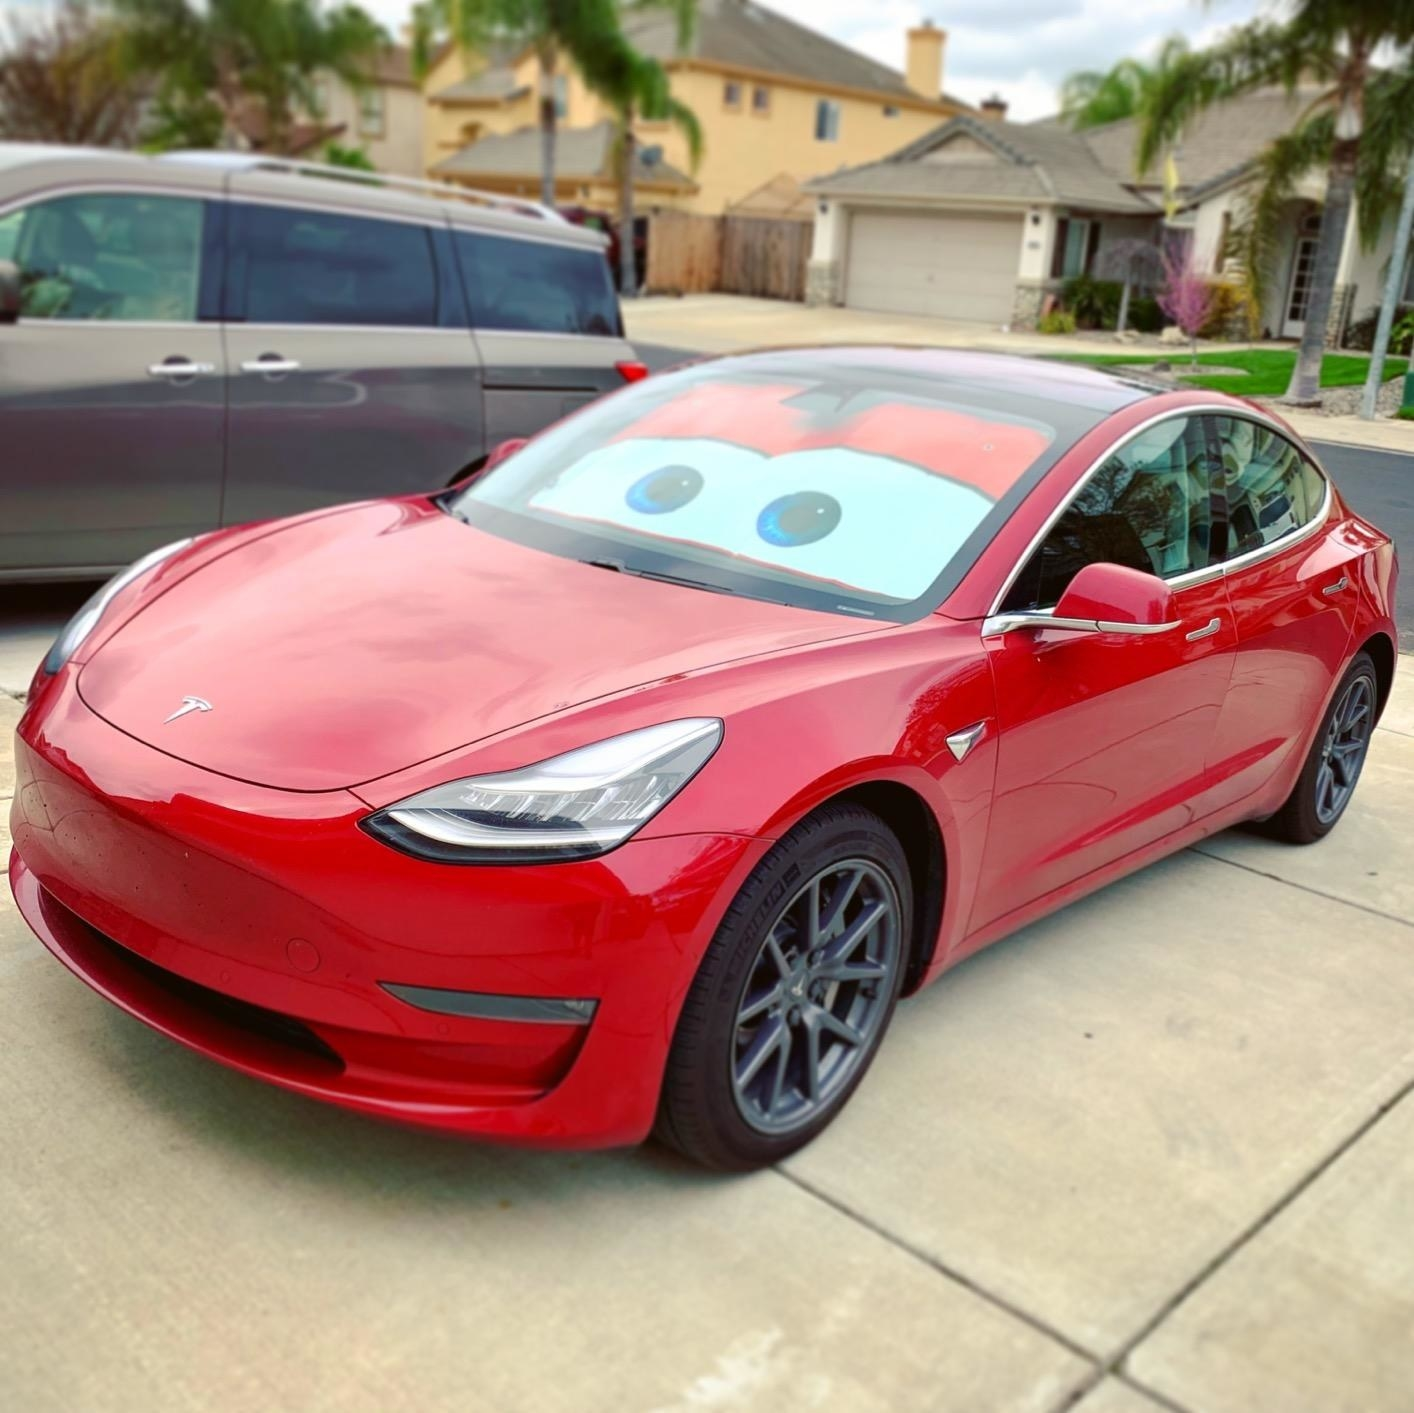 A reviewer's red car with the Lightning McQueen eyes shade in the windshield